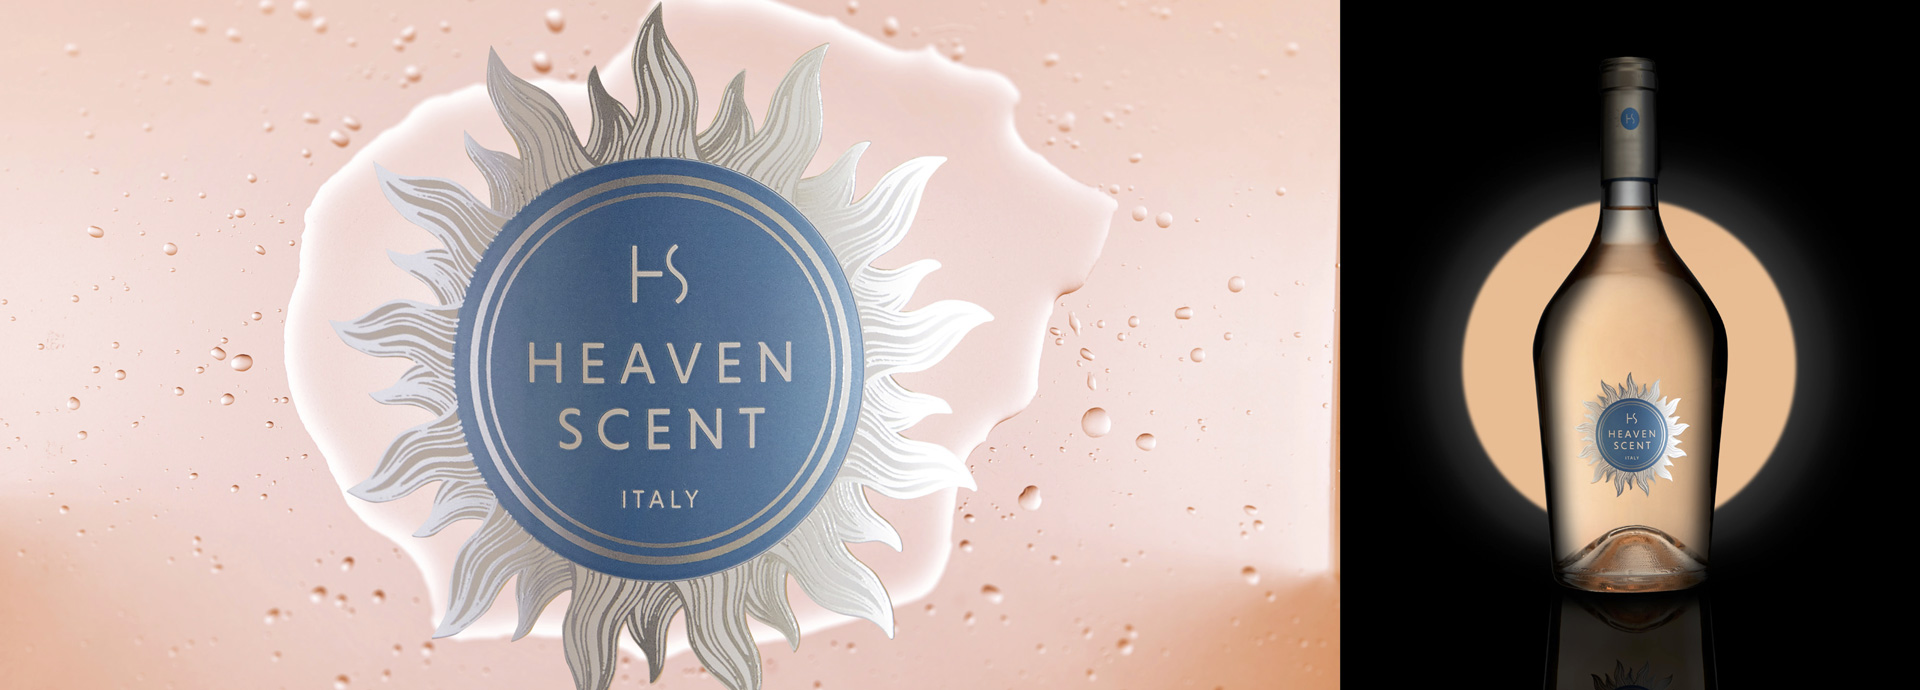 The new website of Heaven Scent by Hangar Design Group